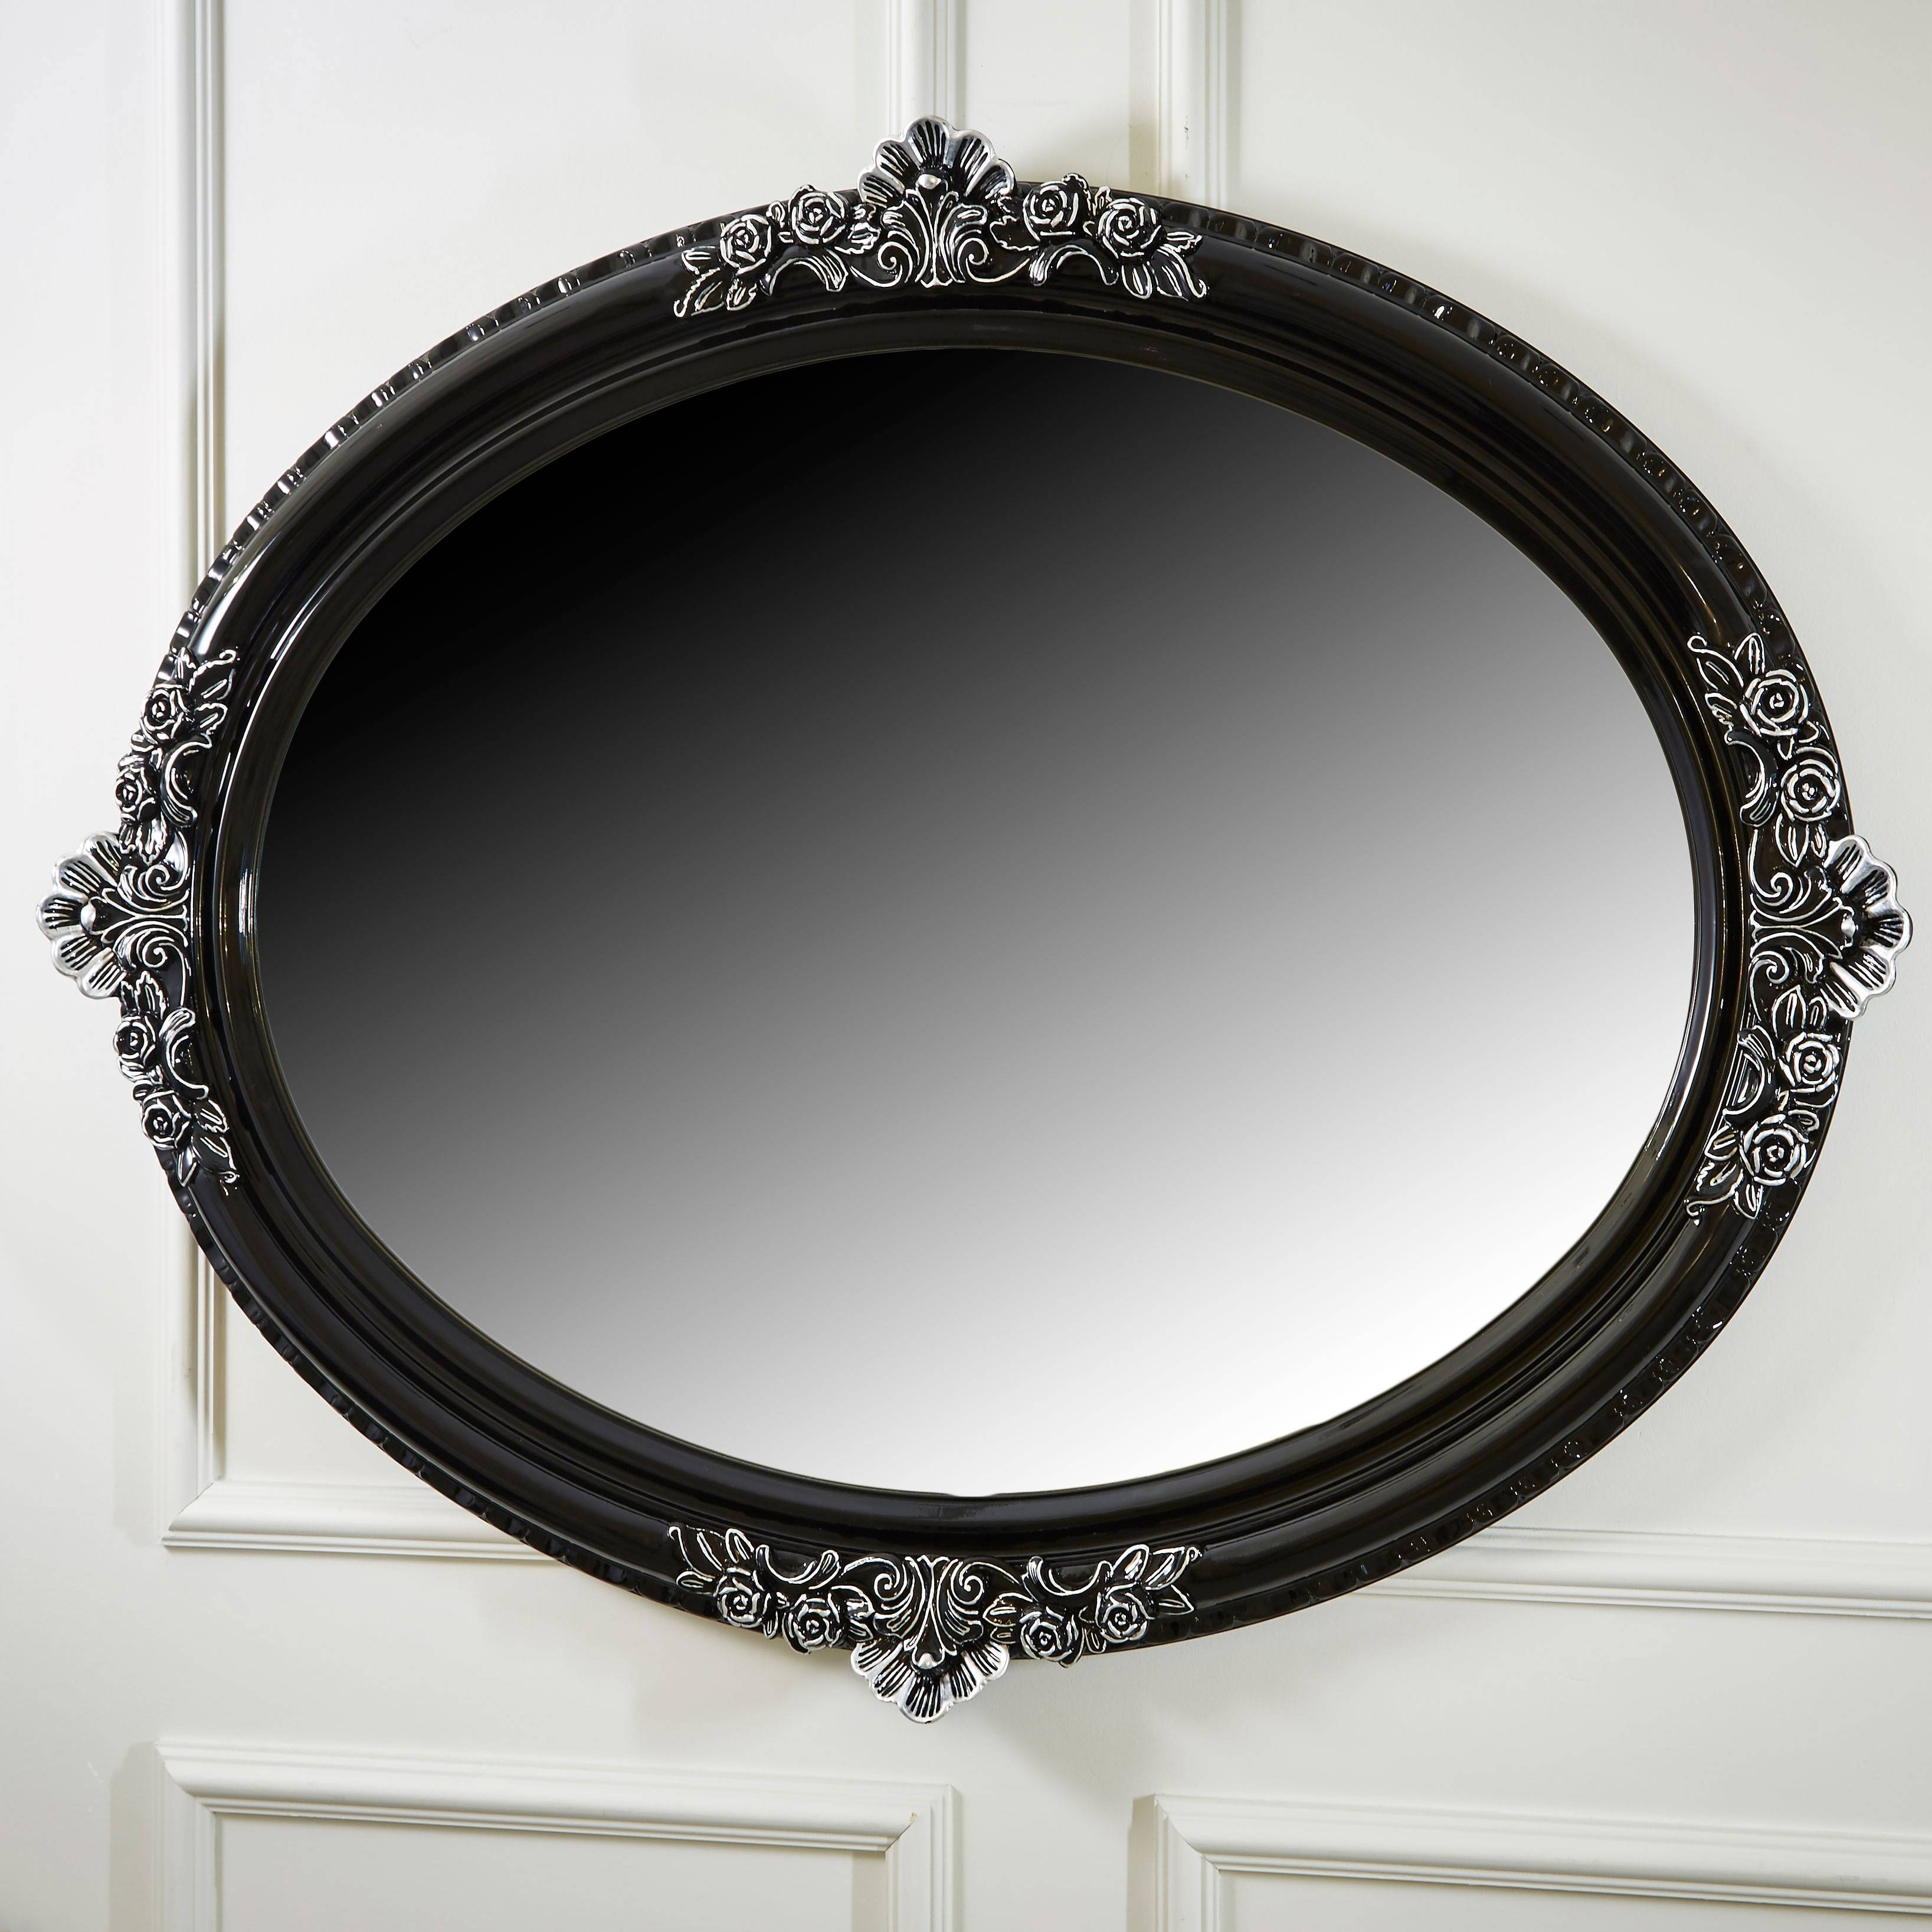 Mirror : Large Black Shabby Chic Framed Ornate Overmantle Wall Inside Large Black Ornate Mirrors (View 10 of 15)